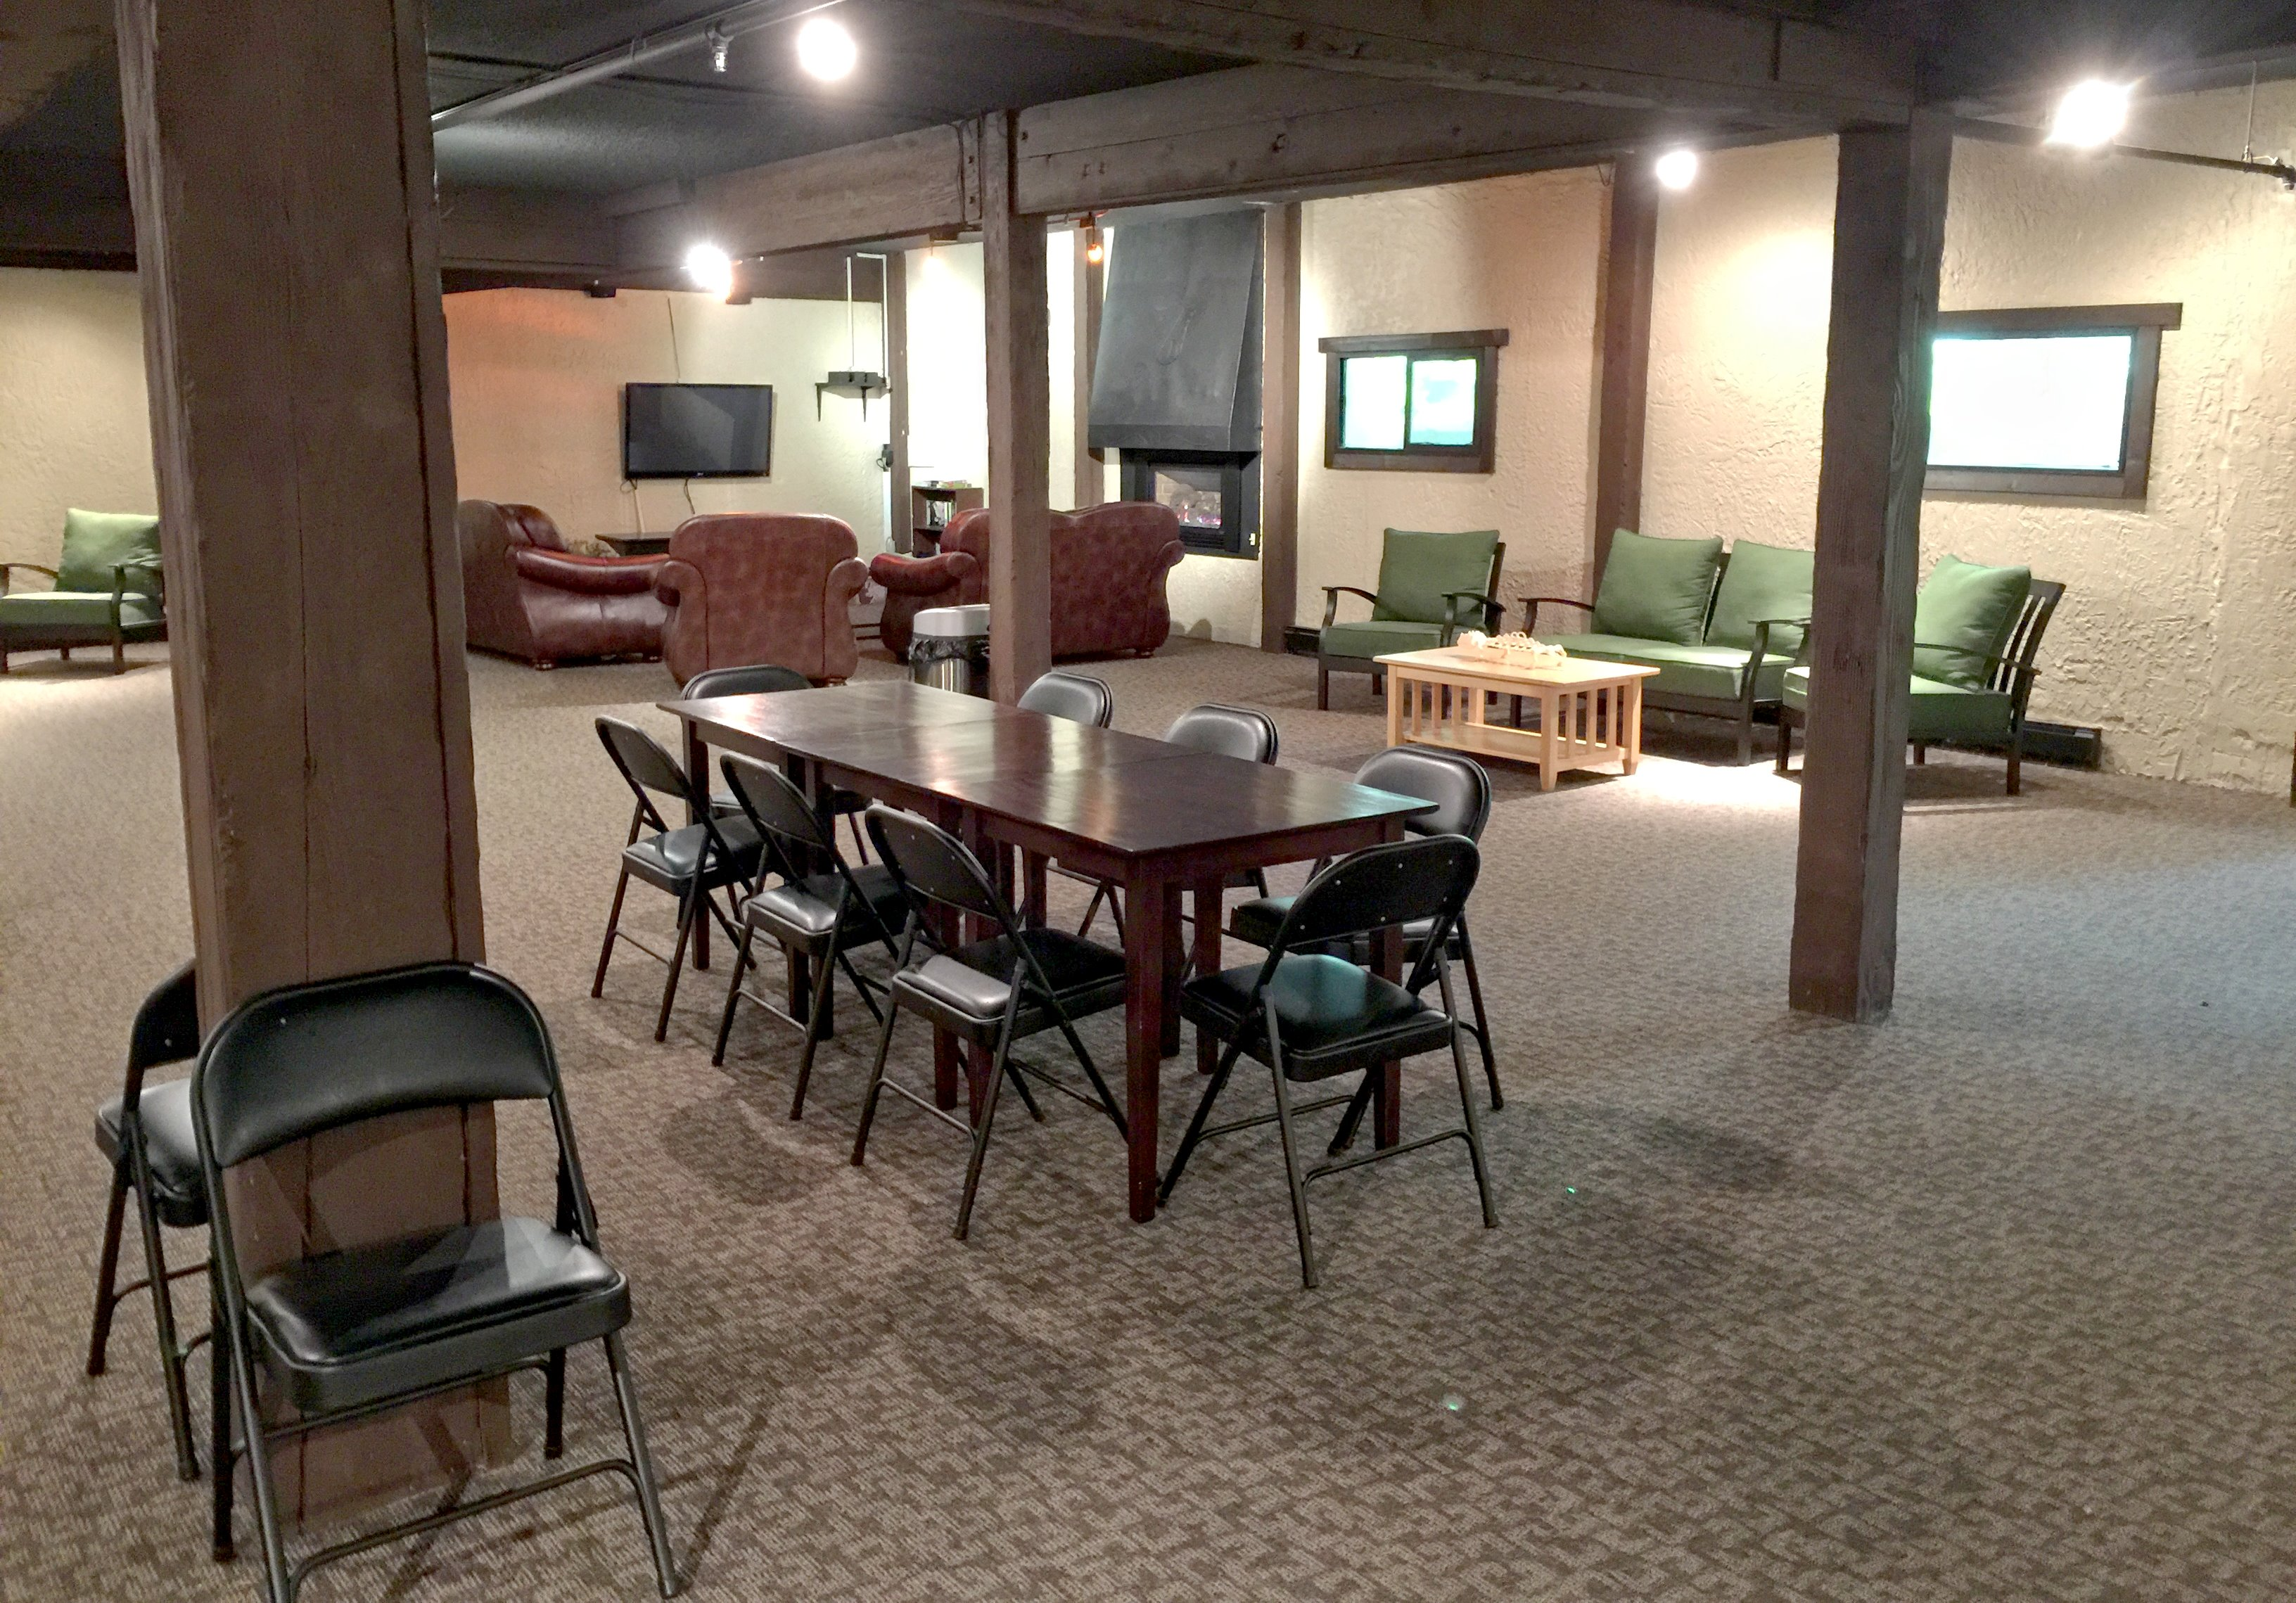 Snowline Lodge Game Room in Lower Level of the Building